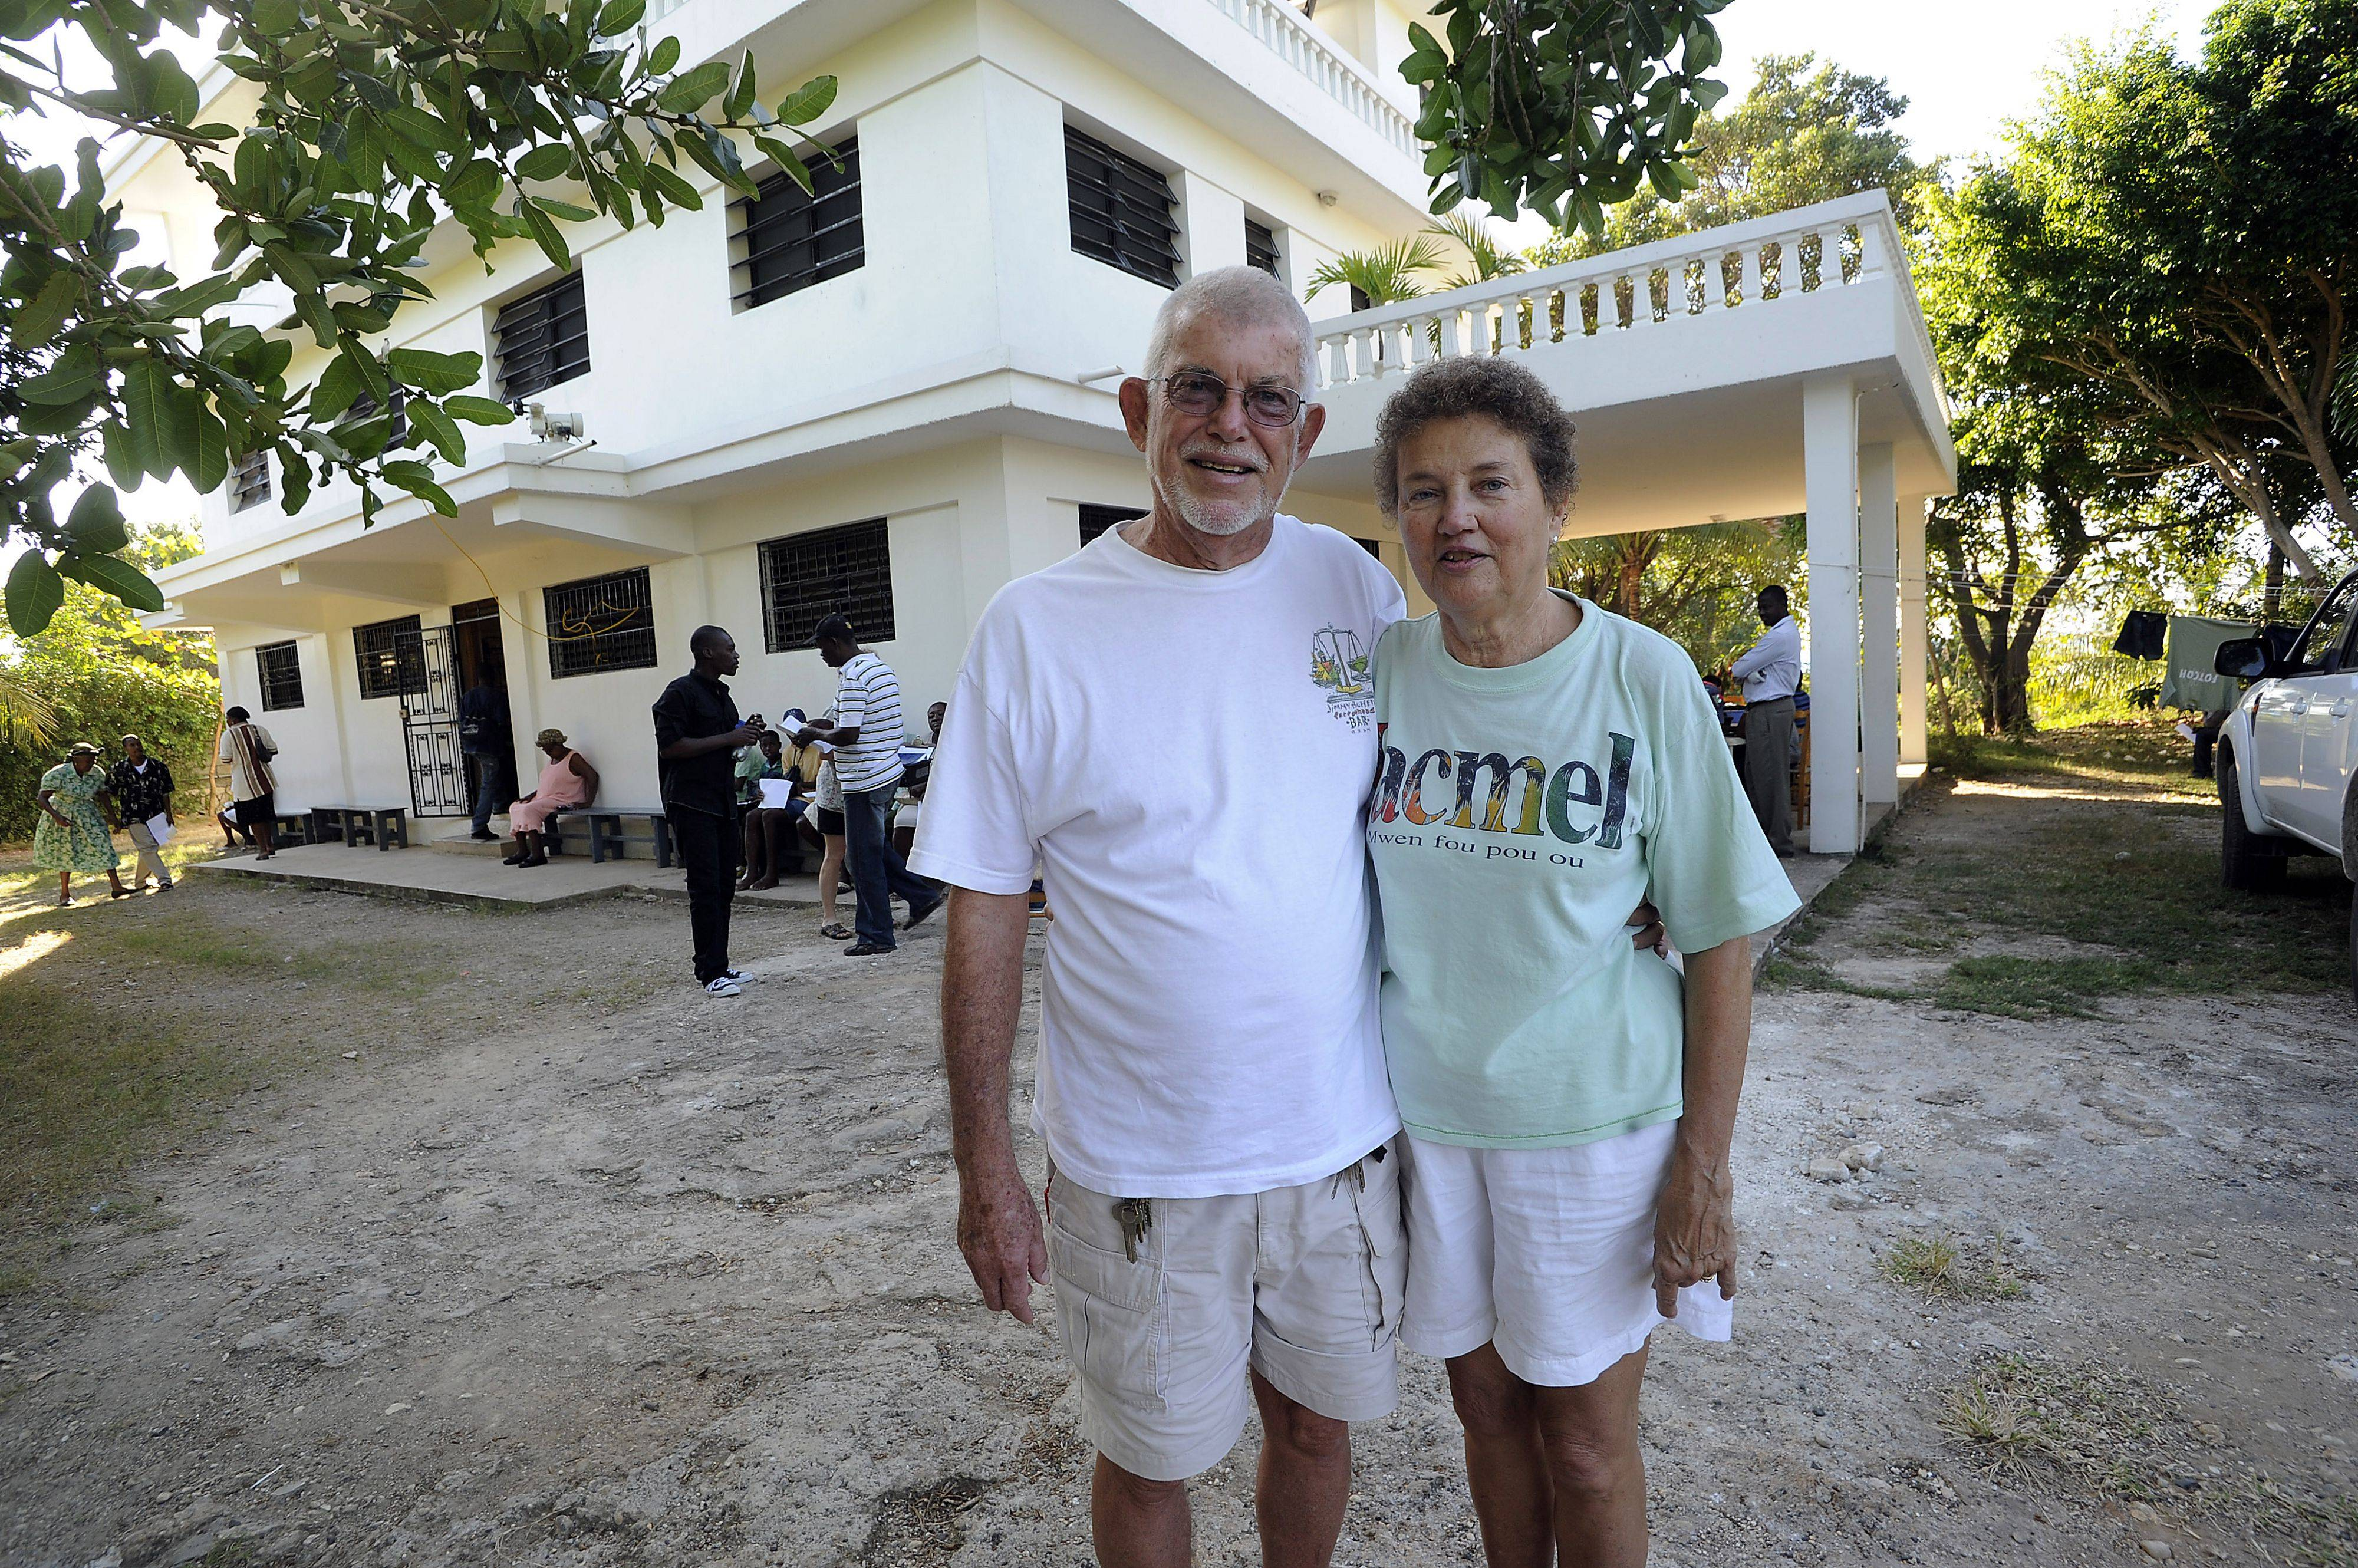 Dick and Barb Hammond formally of Peoria, Illinois started the FOTCOH Foundation In Jacmel, Haiti over twenty years ago offering free medical care to the Haitian people.